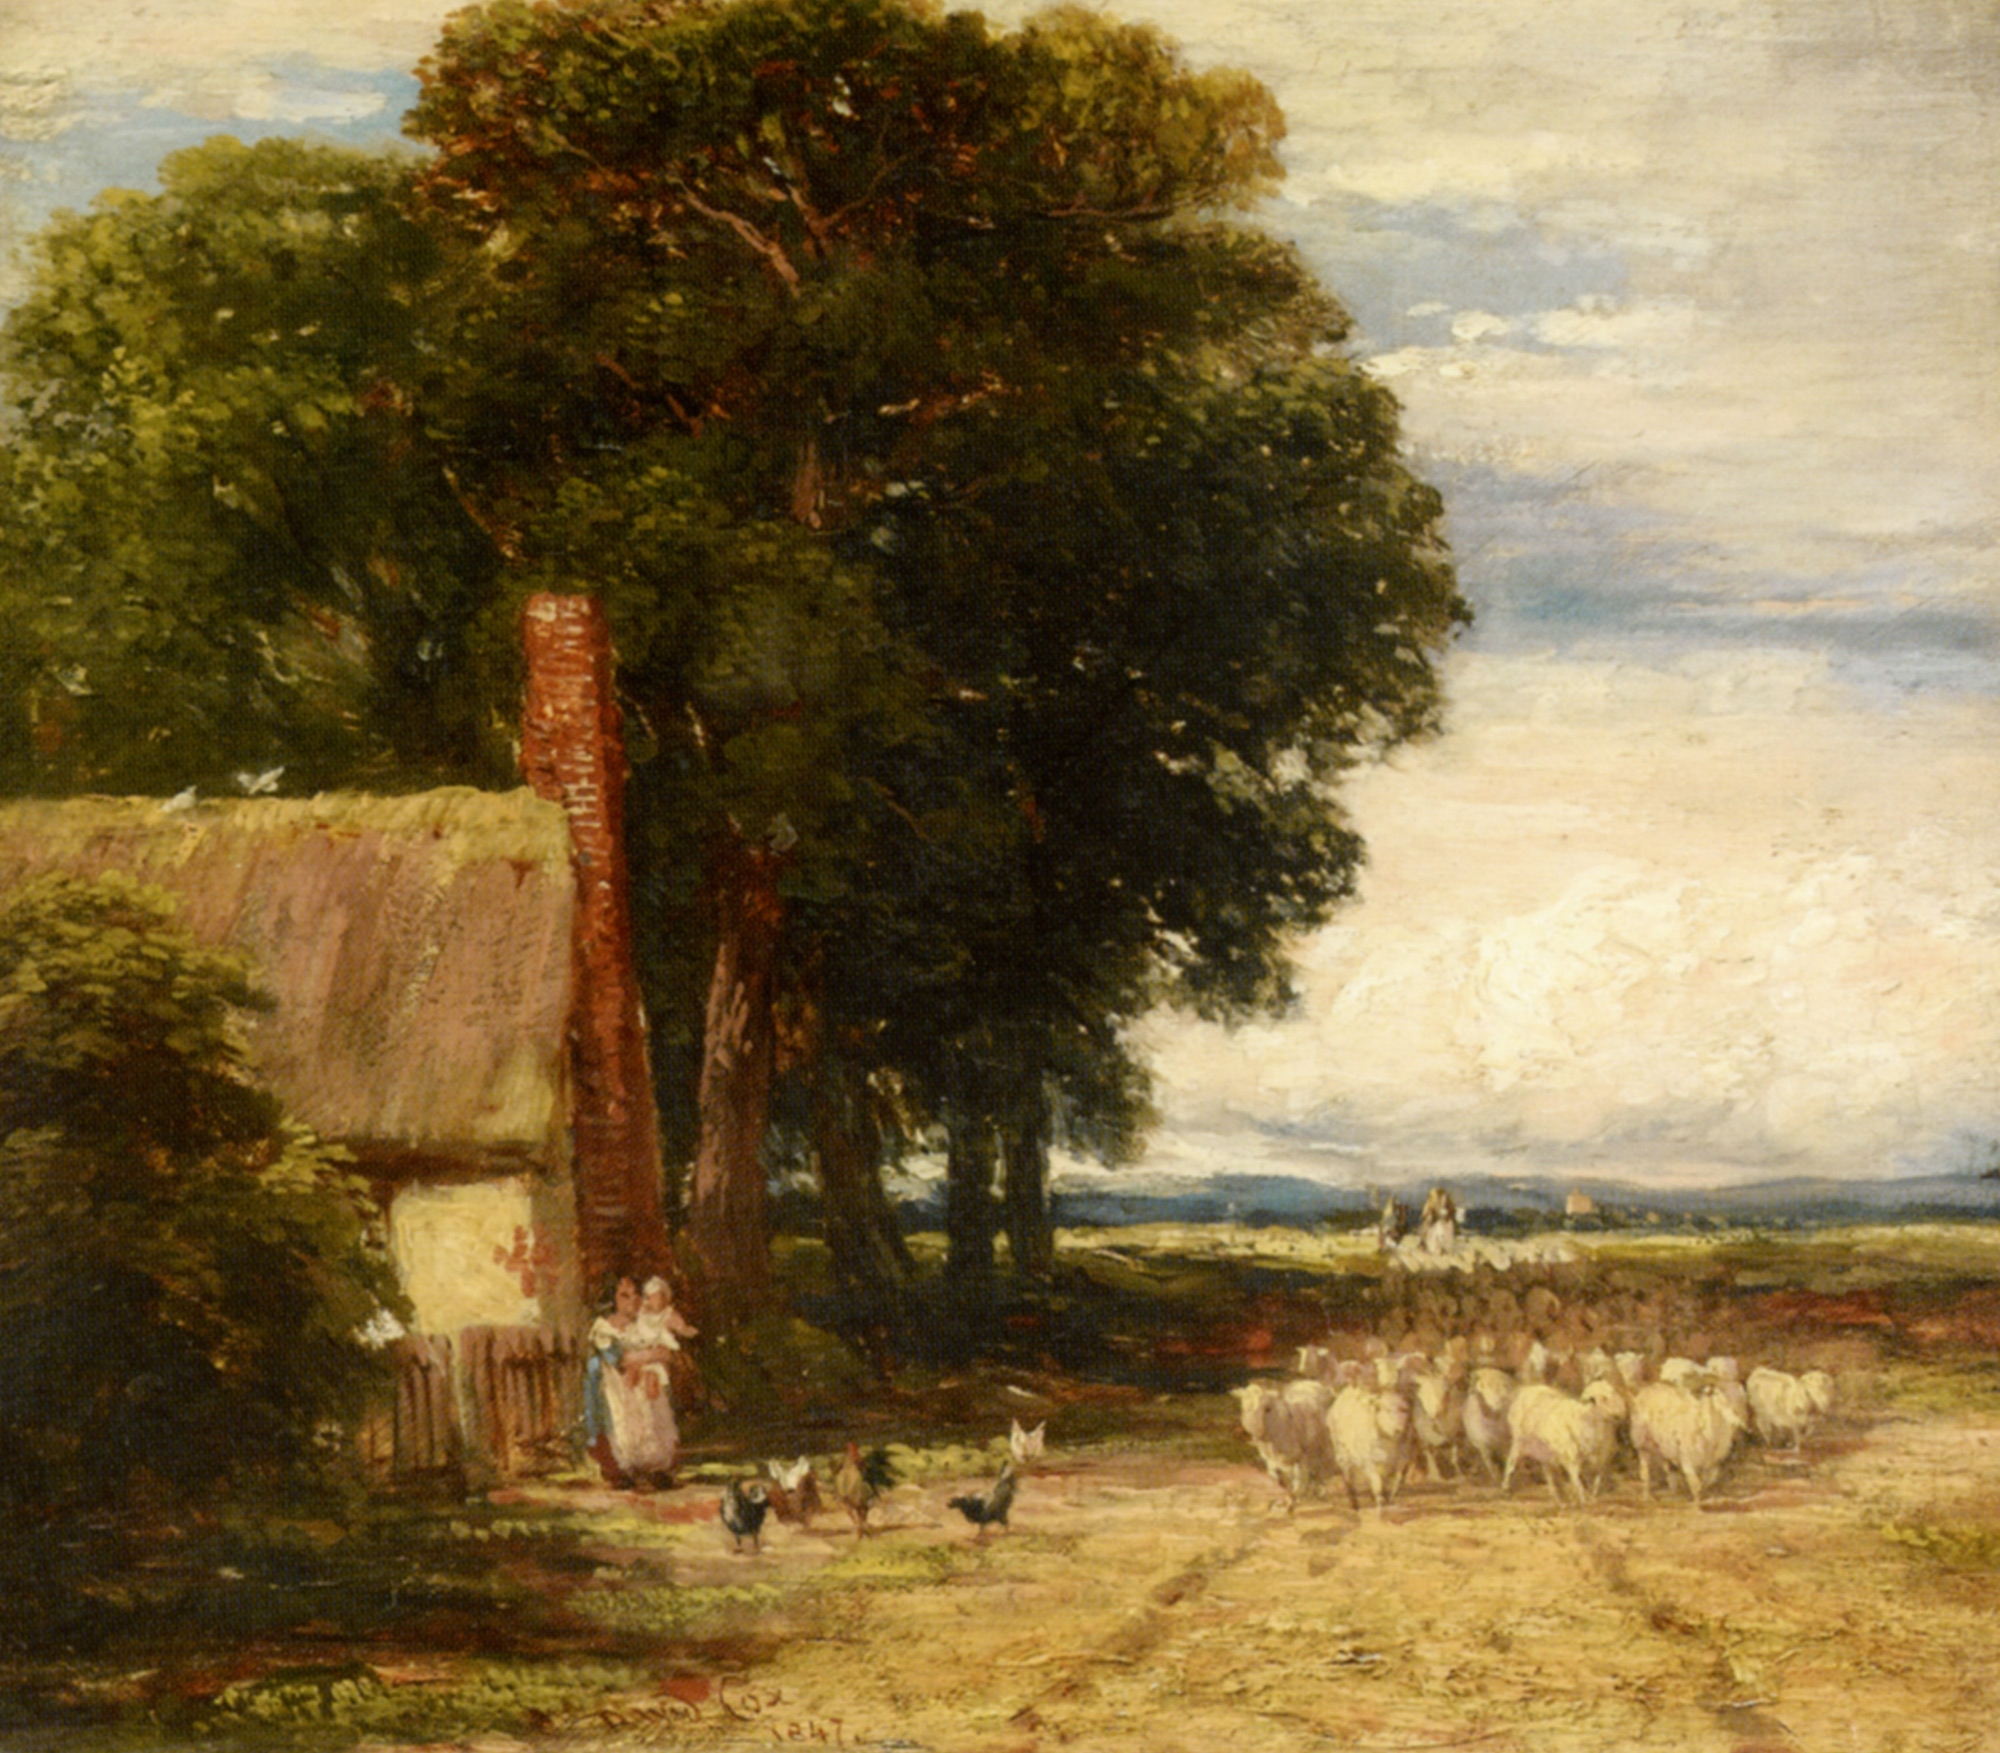 Landscape with a Shepherd and Sheep :: David Cox - Summer landscapes and gardens ôîòî